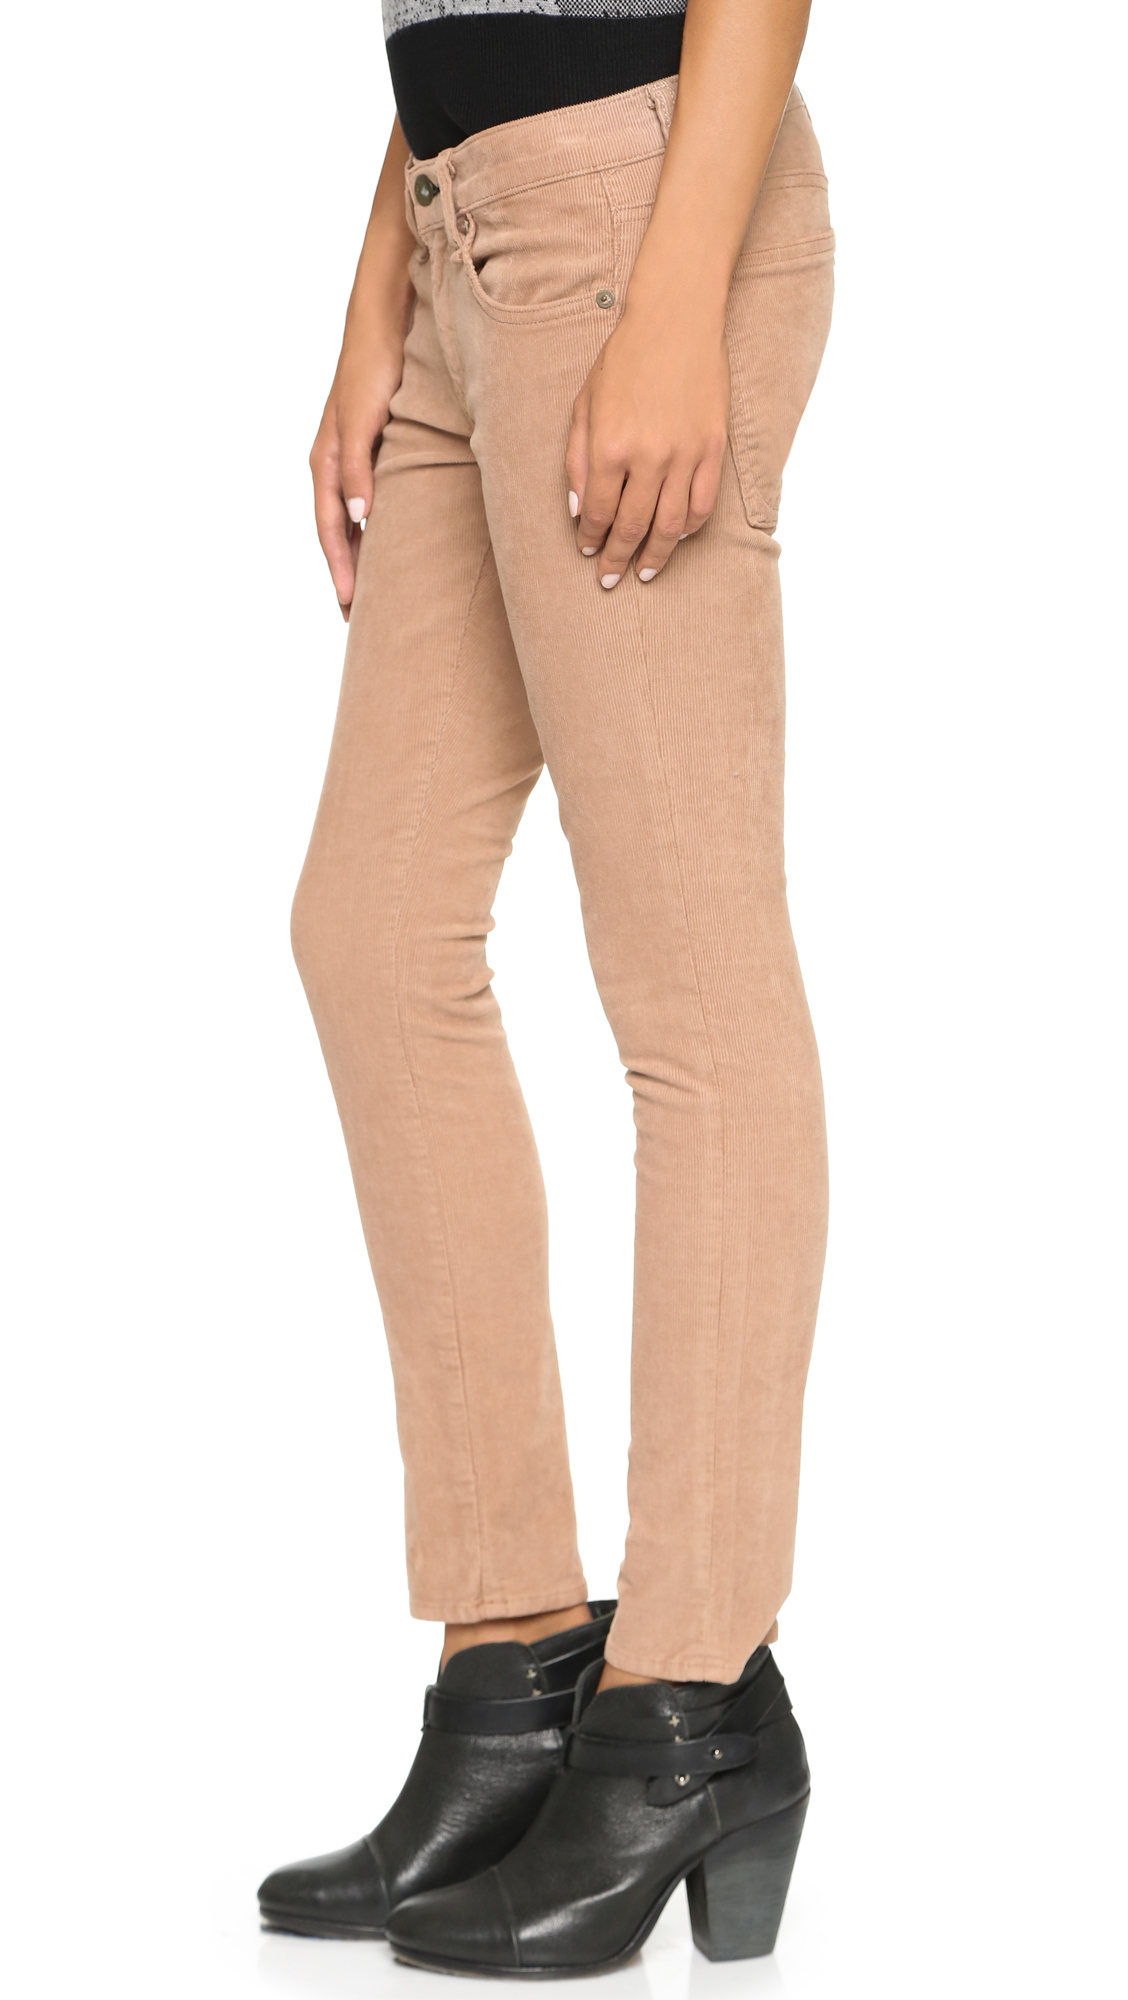 Amazing Tan Corduroy Fly Button Closure Pants Style Clothing Pants A7 3030tan